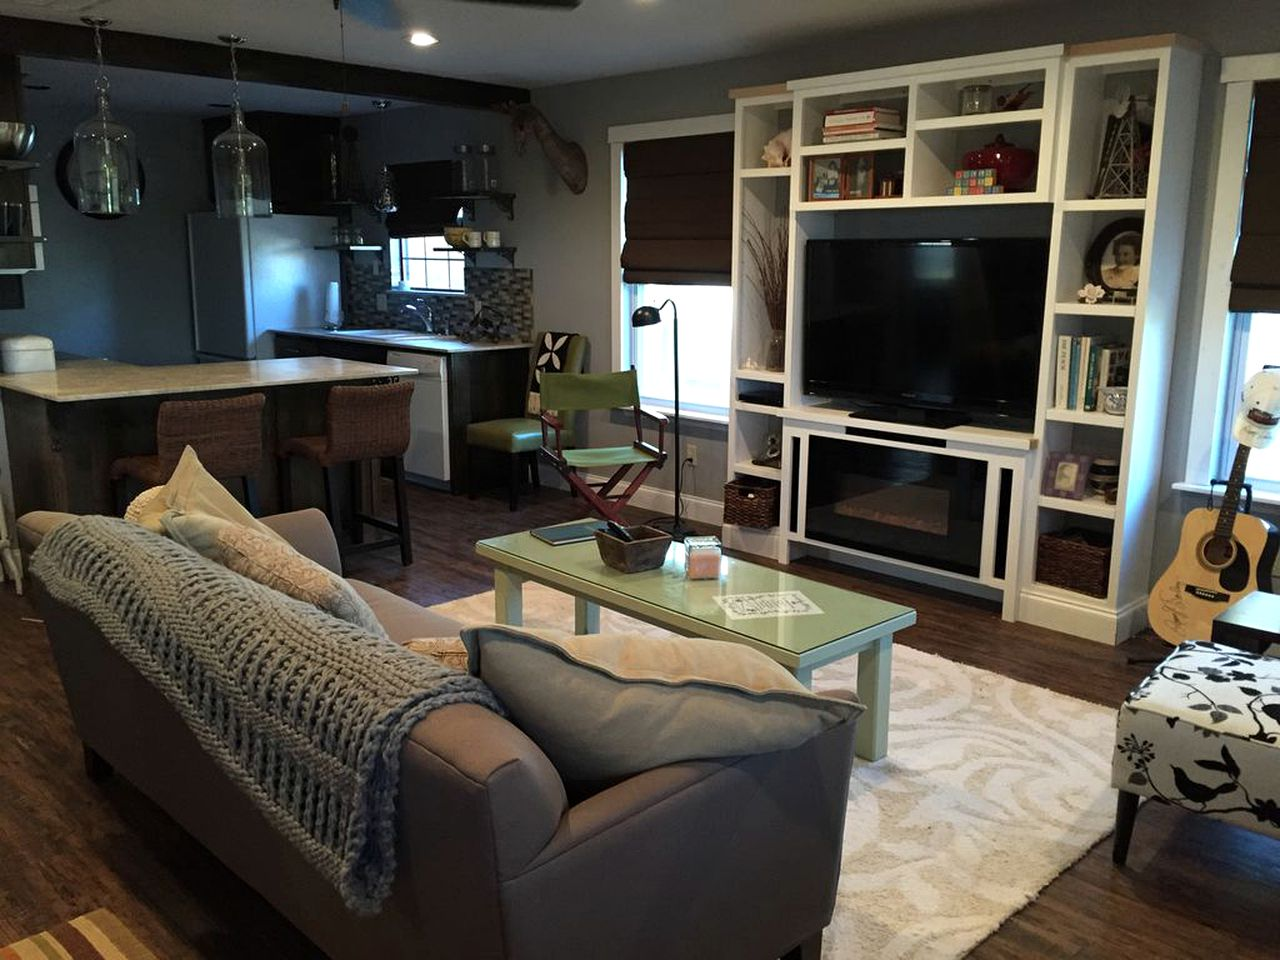 Vacation Rentals (Weatherford, Texas, United States)